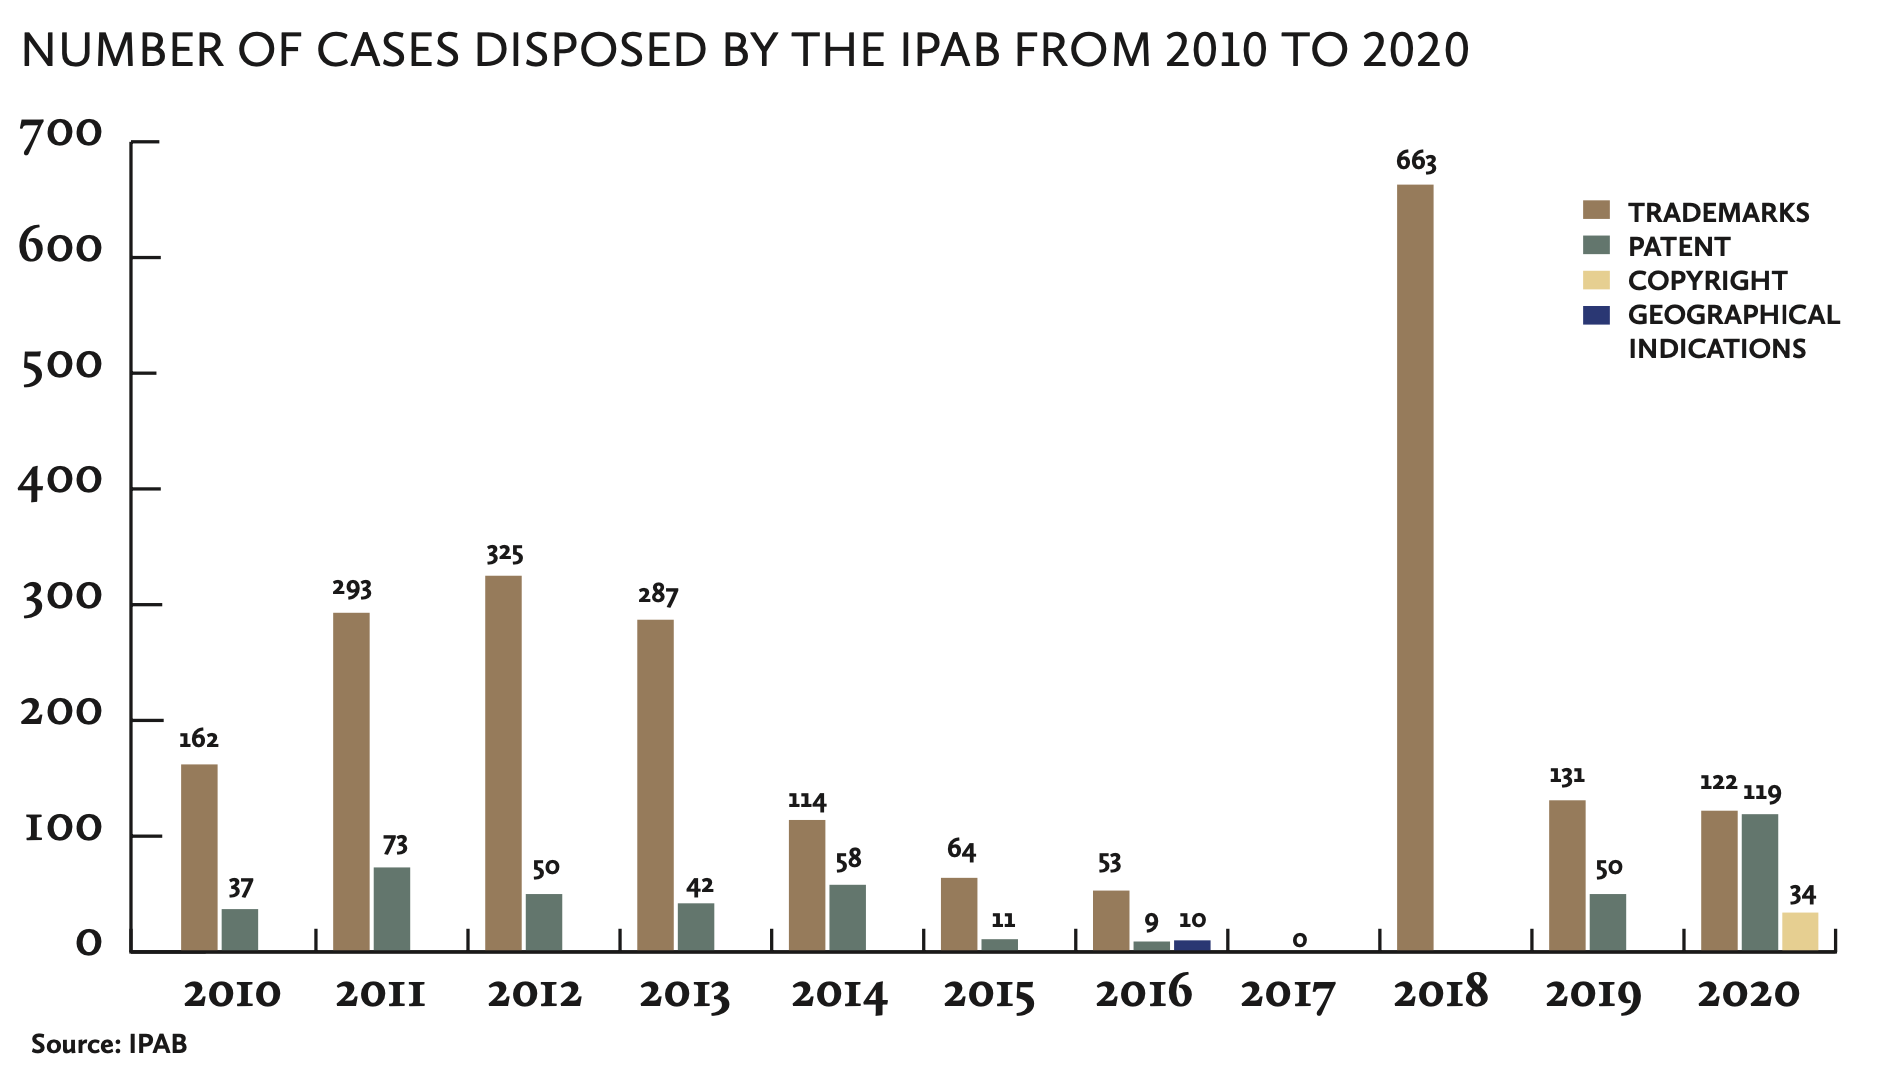 NUMBER OF CASES DISPOSED BY THE IPAB FROM 2010 TO 2020